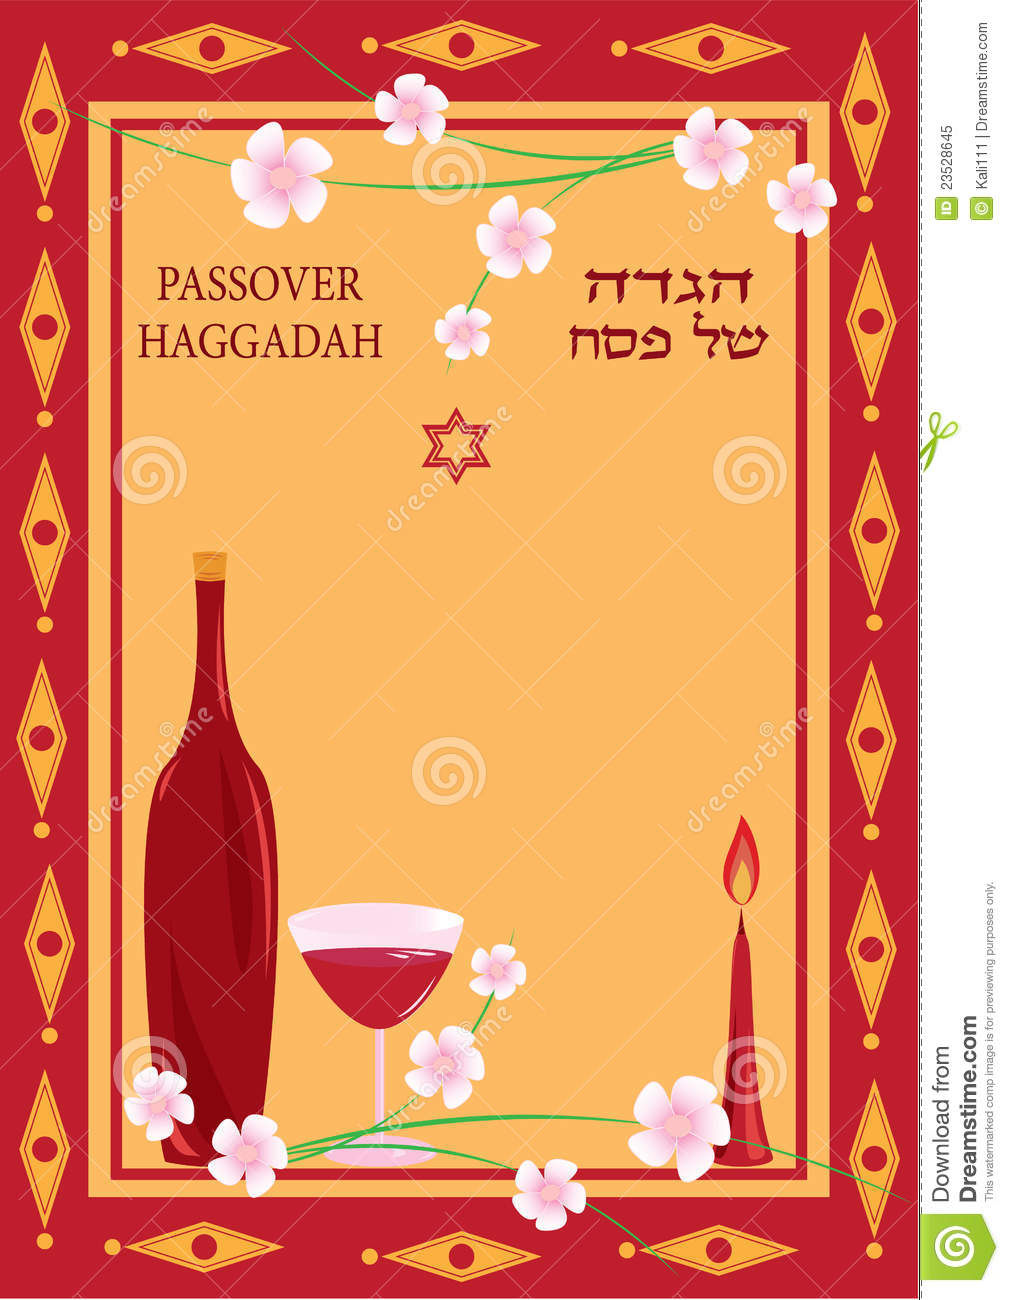 Free Old Time Passover Cards 13